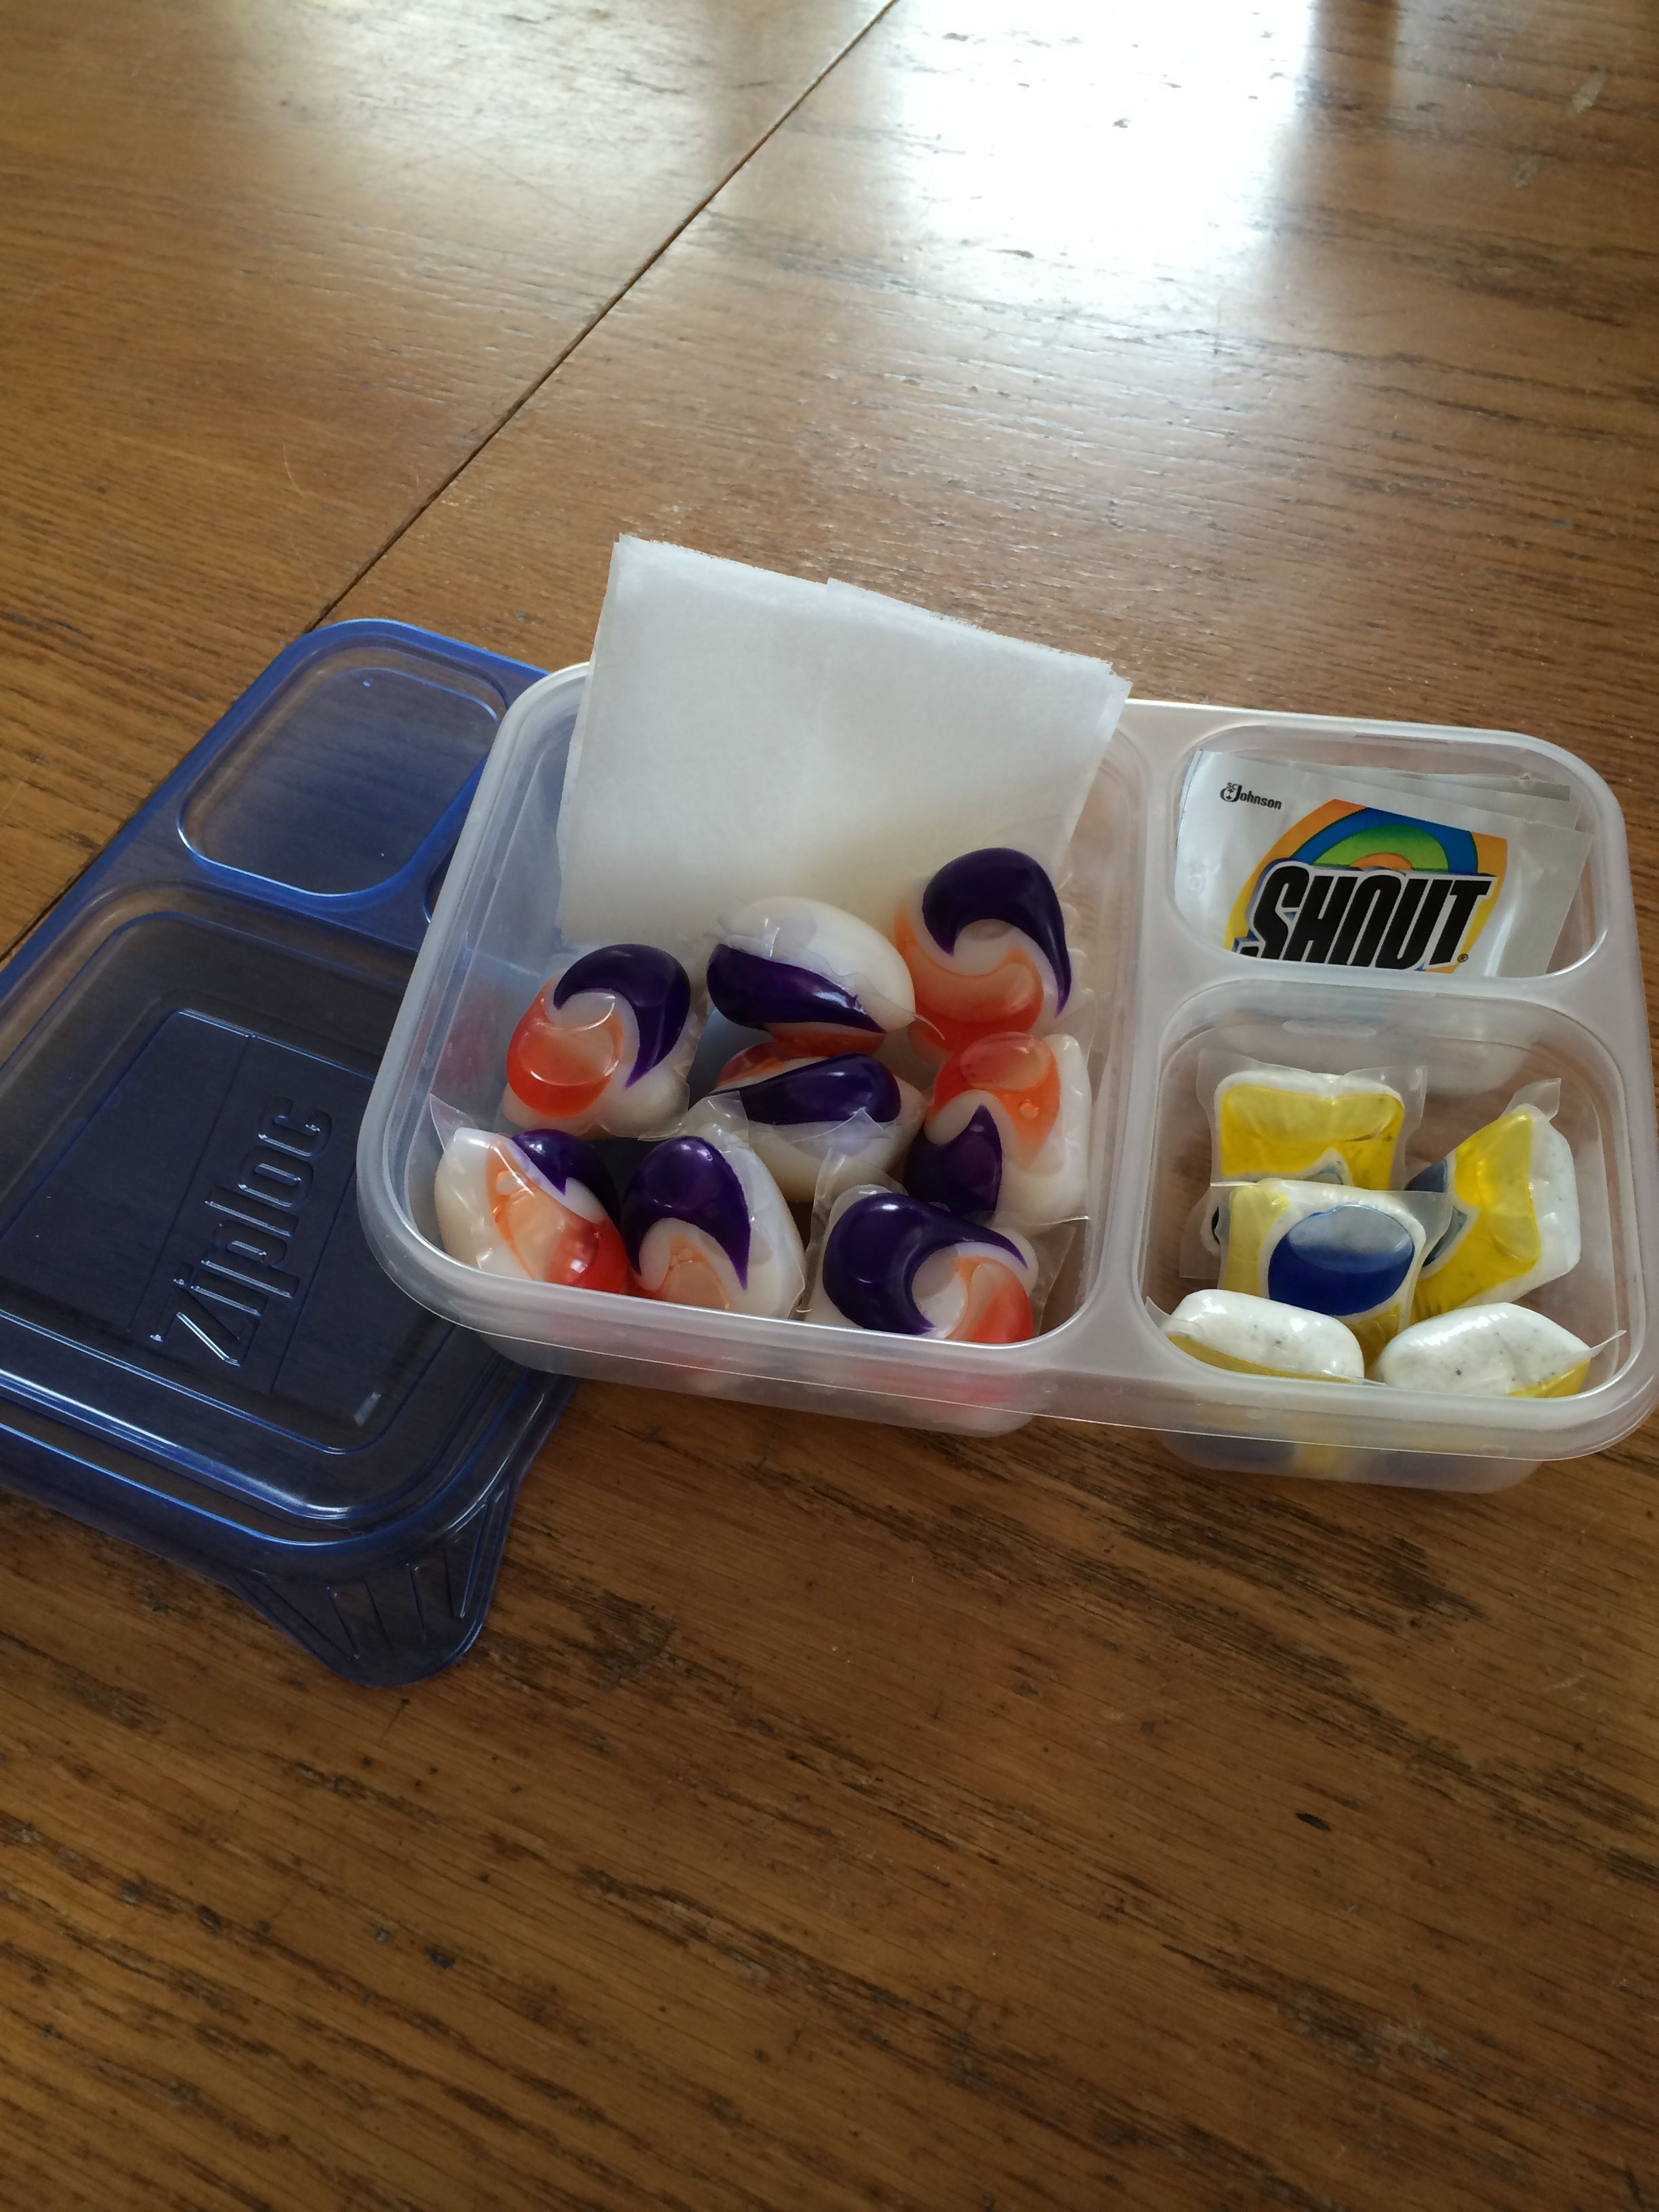 I put this together for our vacation rental! Dishwasher pods, laundry pods, dryer sheets, and Shout stain remover. All in a Ziploc divided container. Very compact!